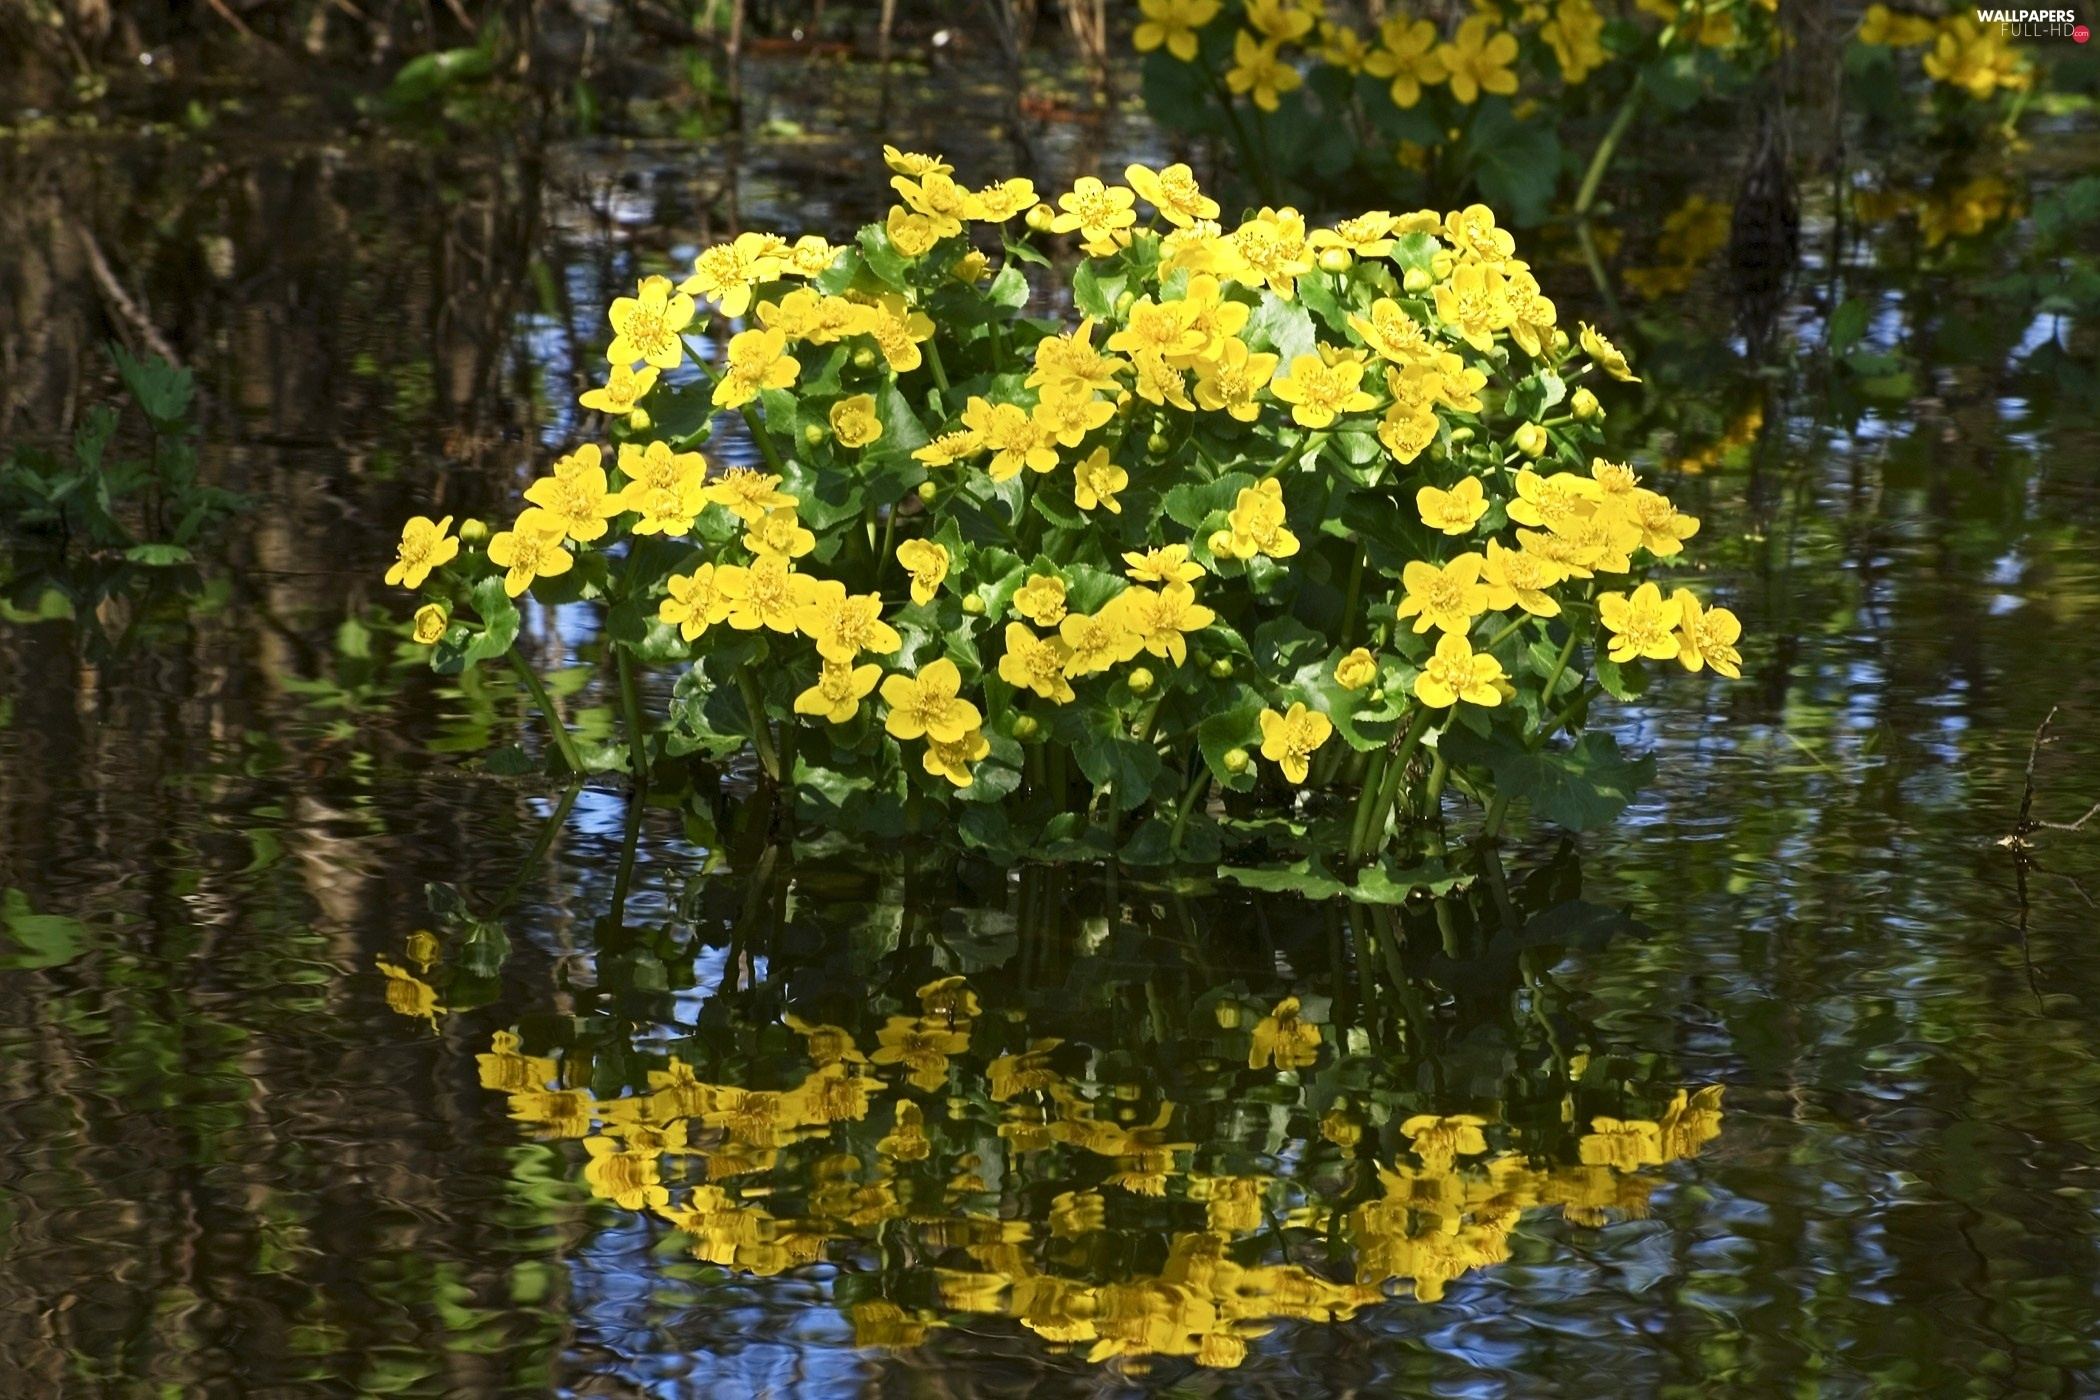 reflection, water, marigolds